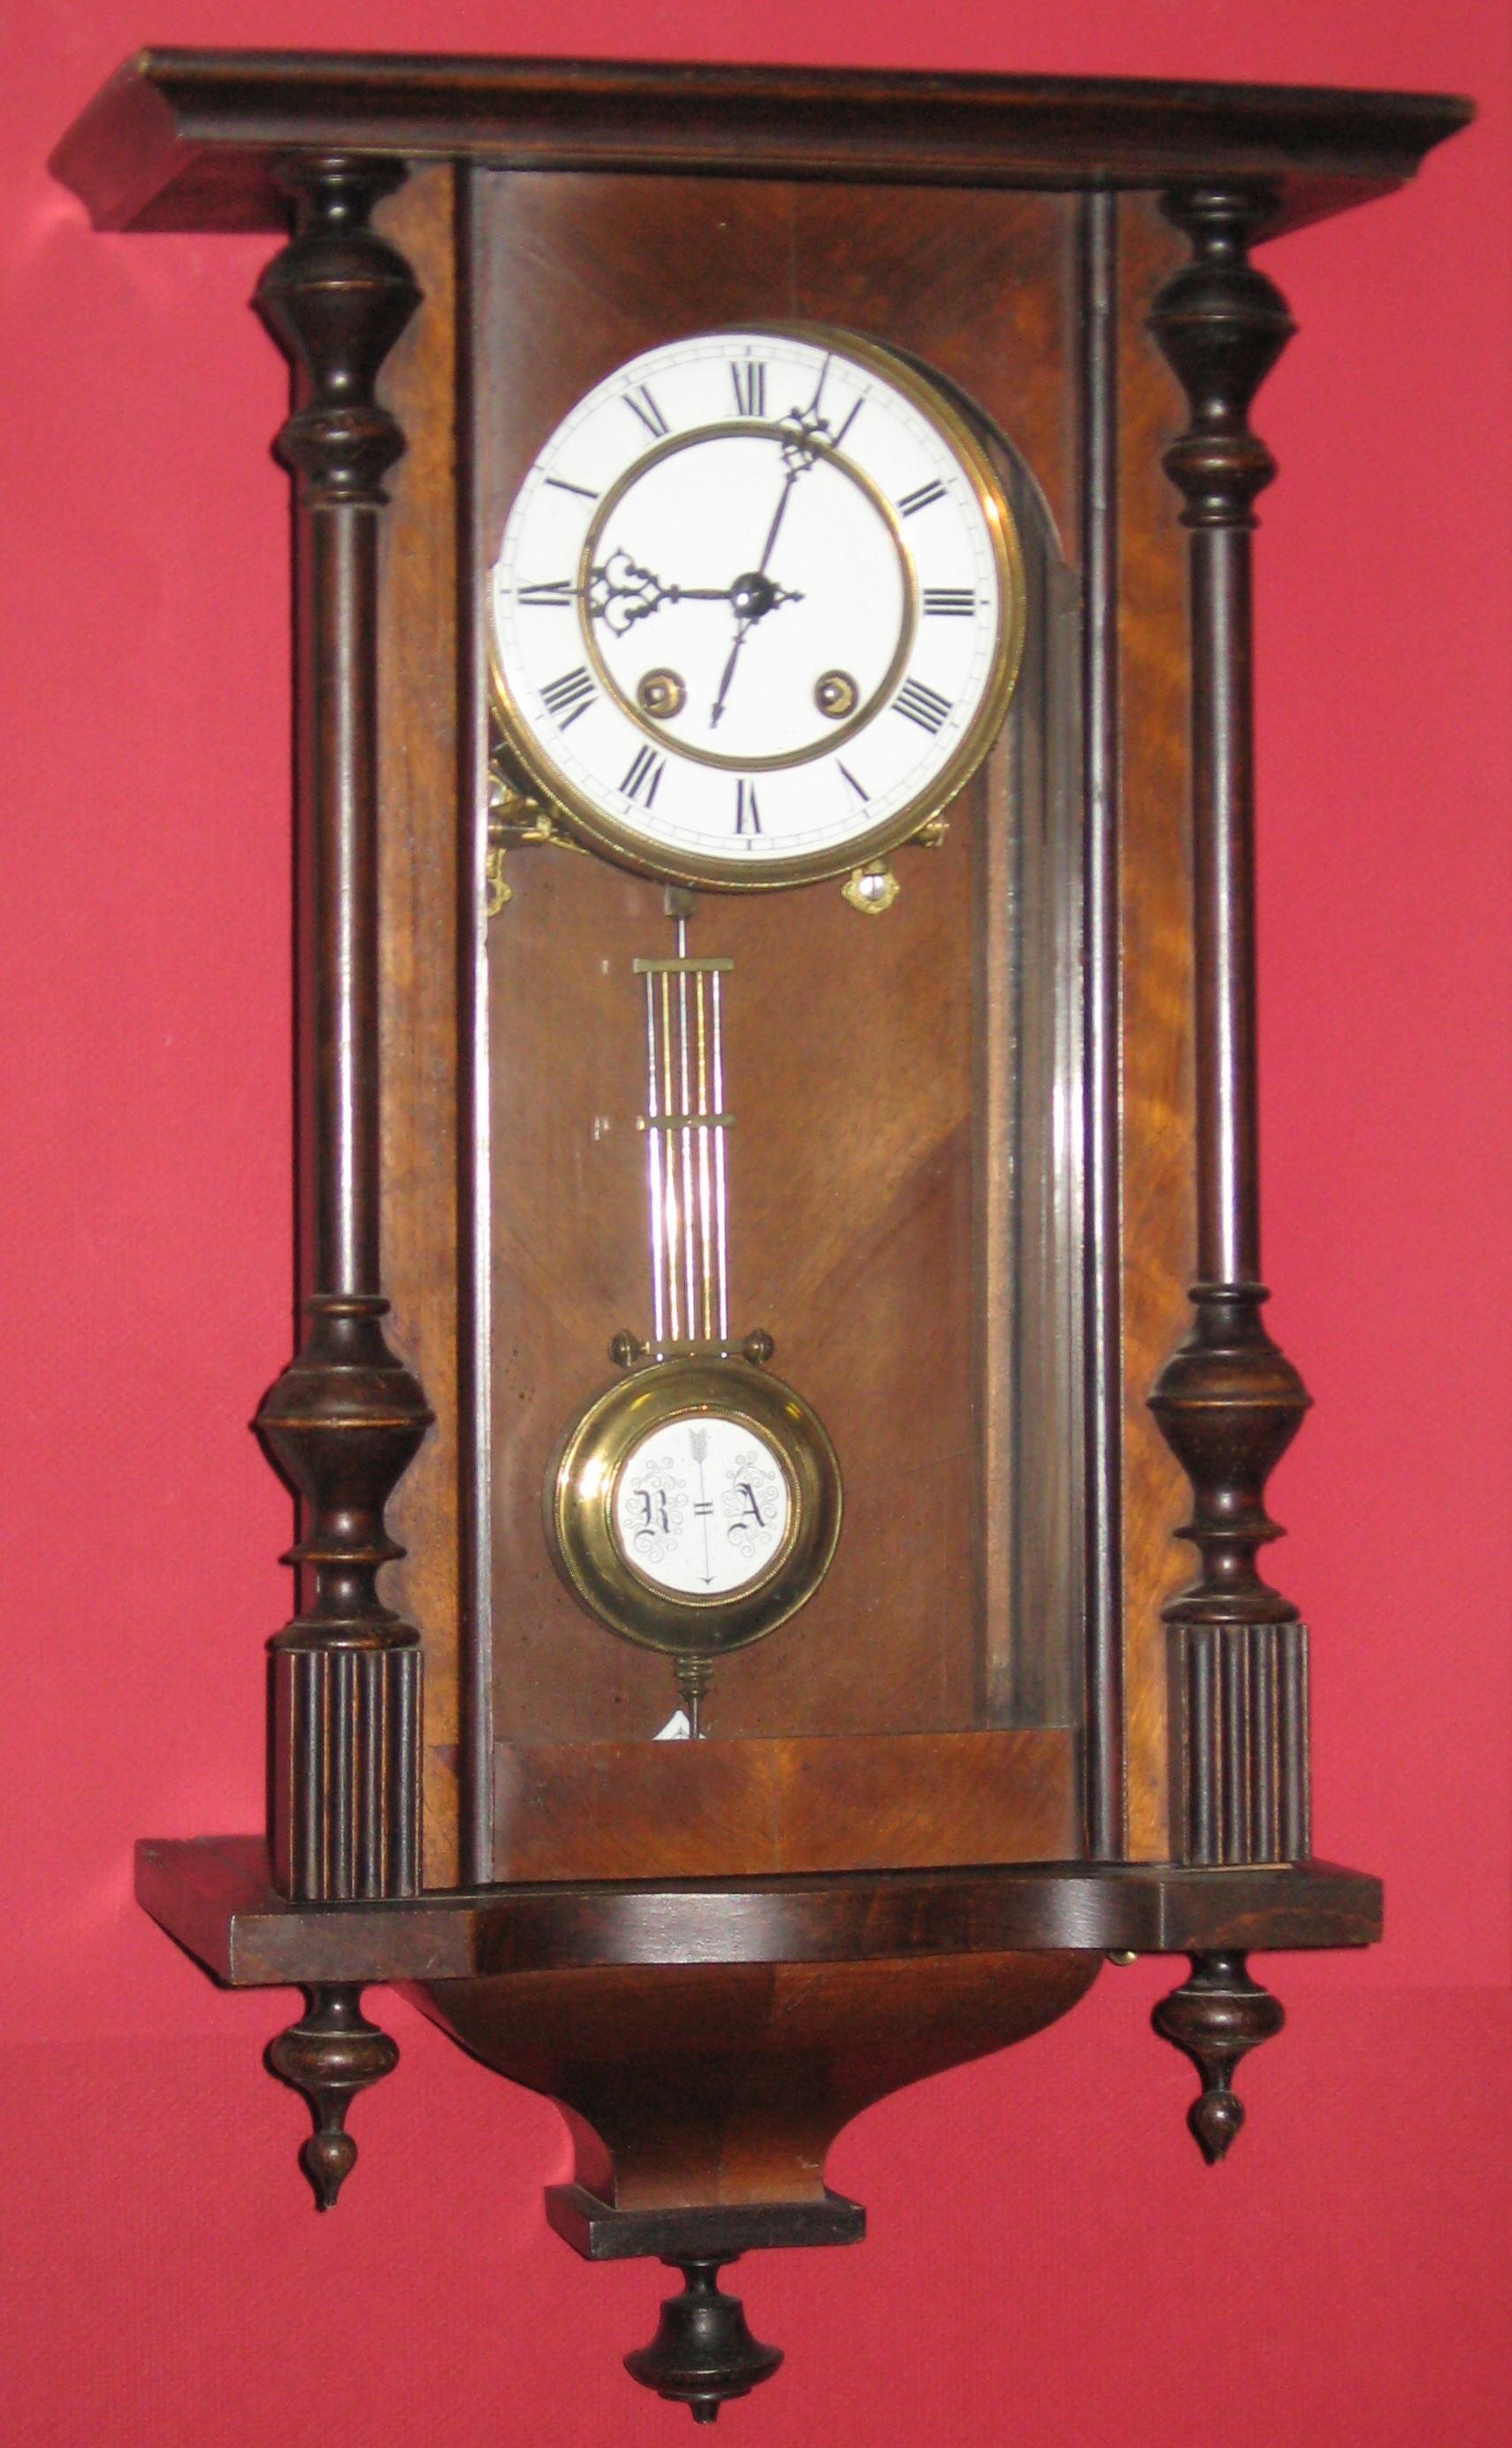 Time And Strike German Wall Clock With Halblang Movement